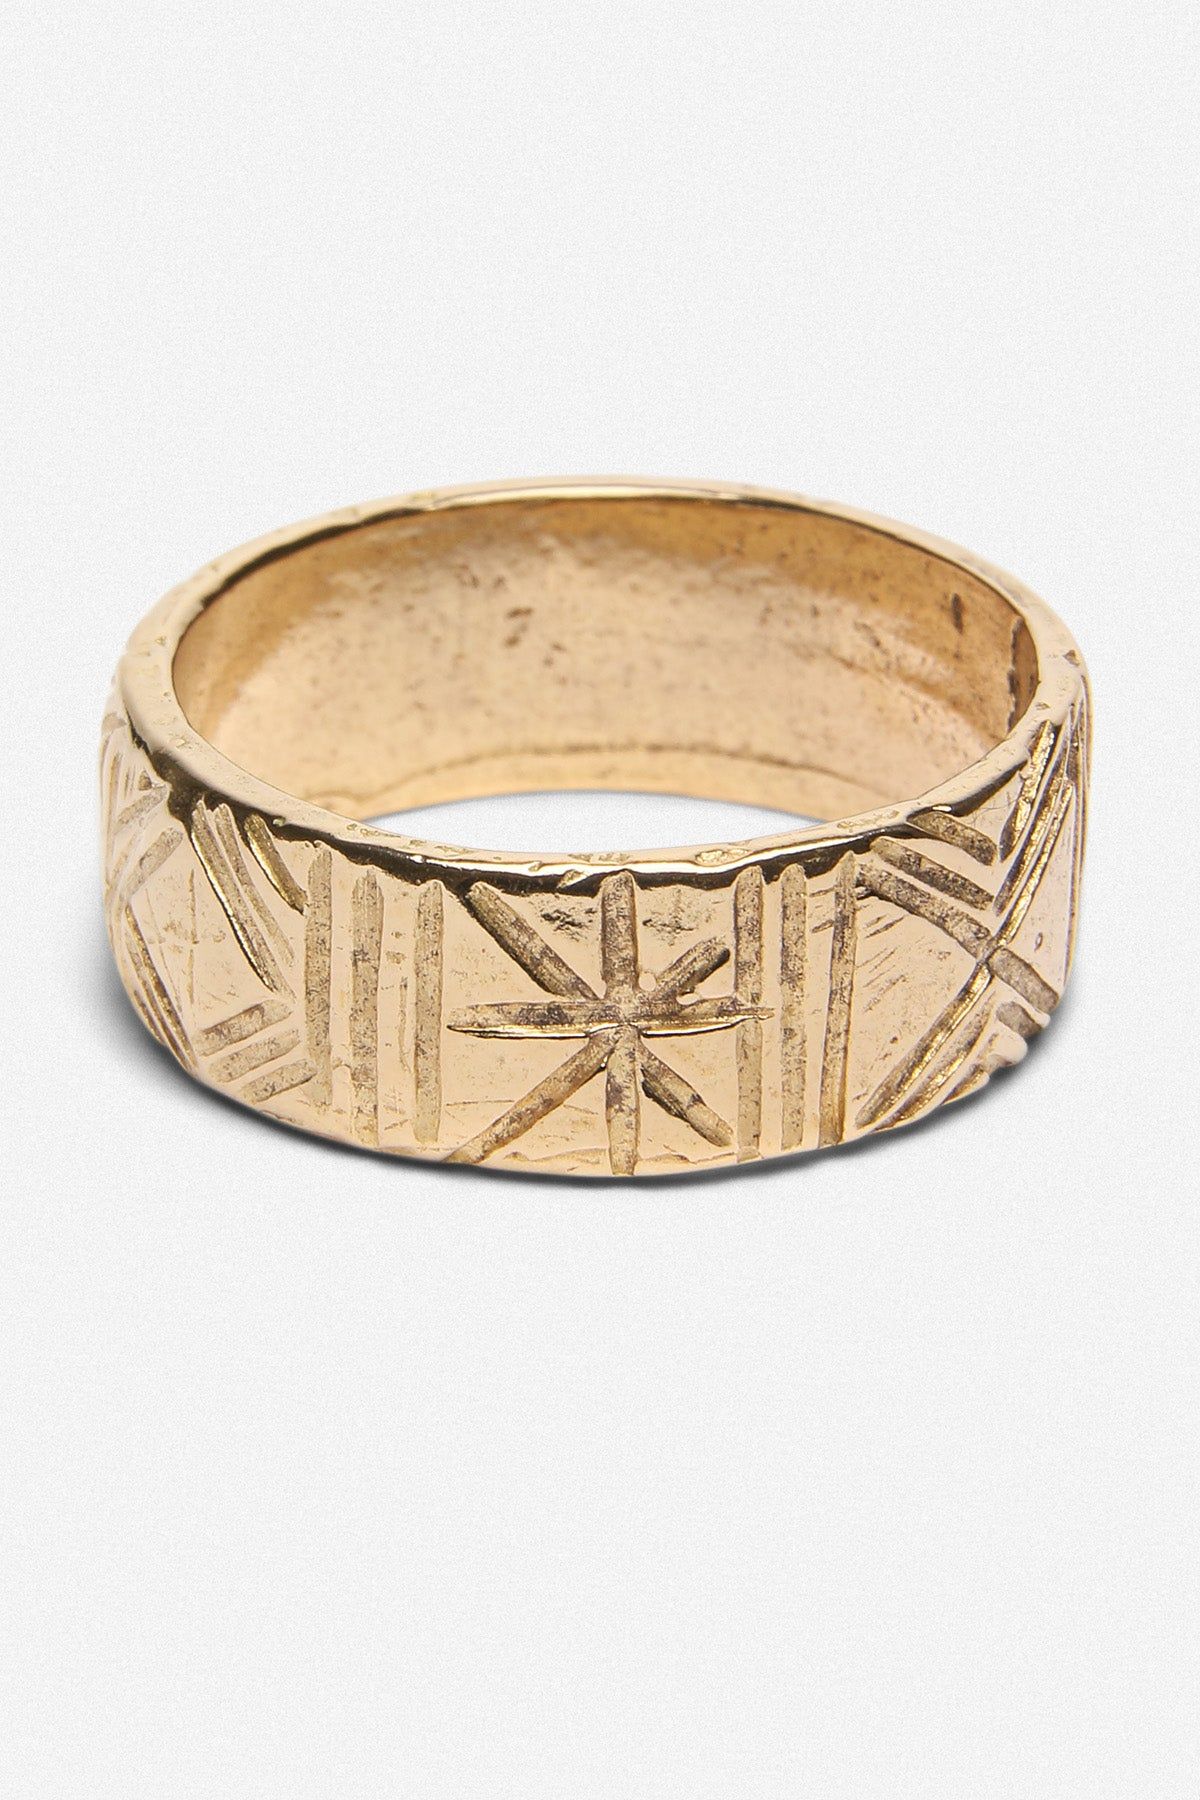 CARVED BAND RING IN GOLD BRONZE - Fortune Goods